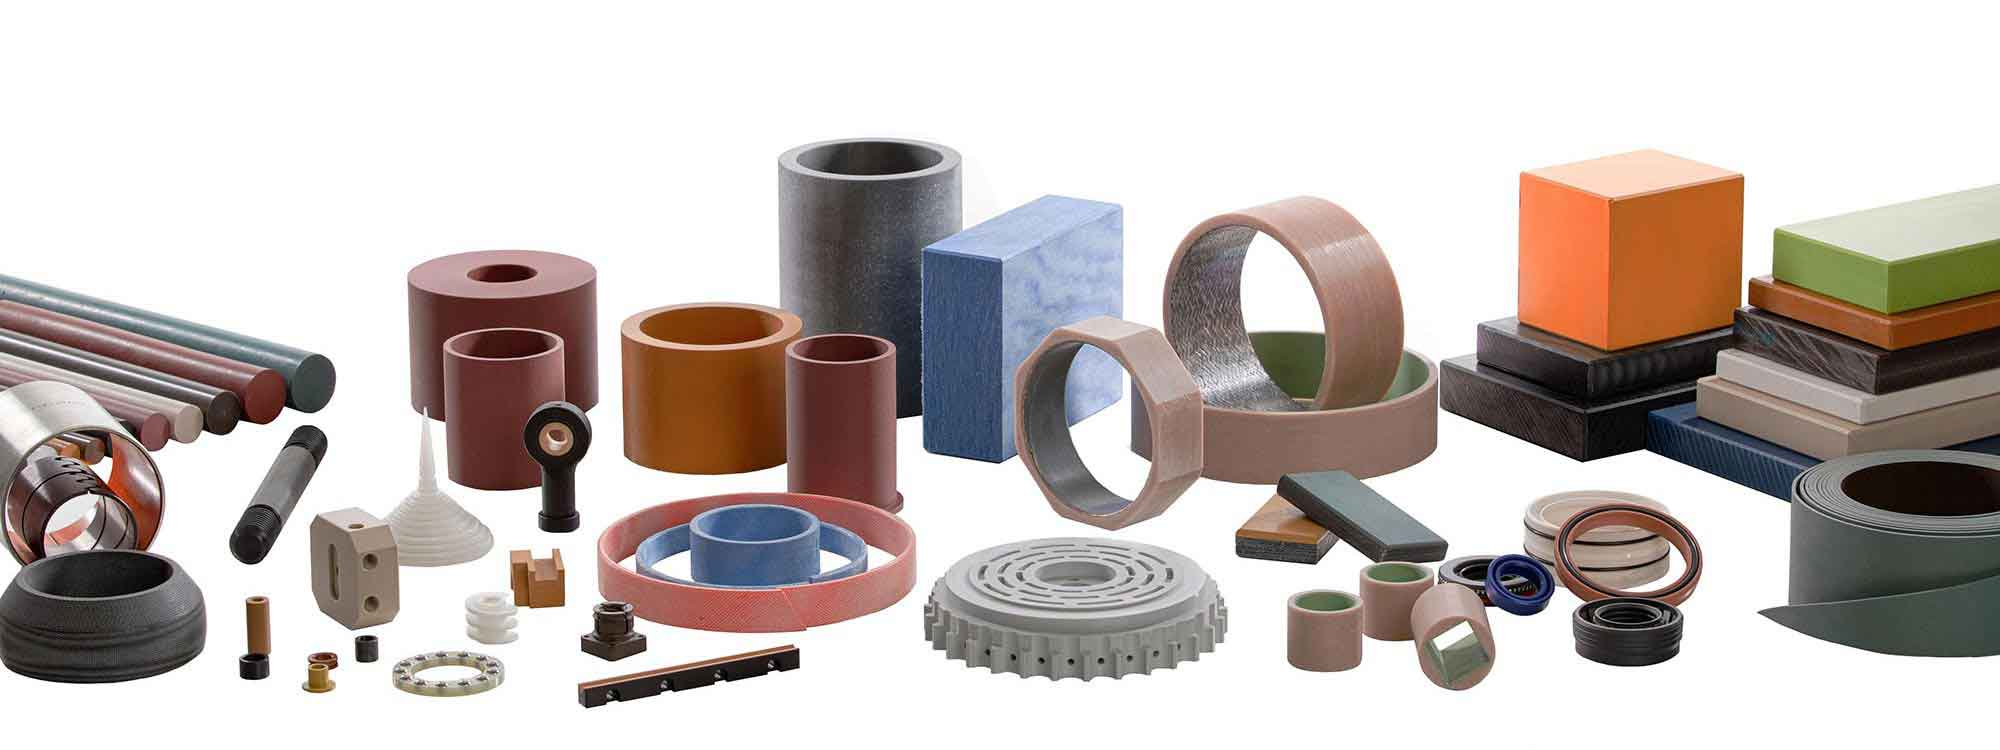 TriStar Plastics Corp. - Engineered Plastic Solutions